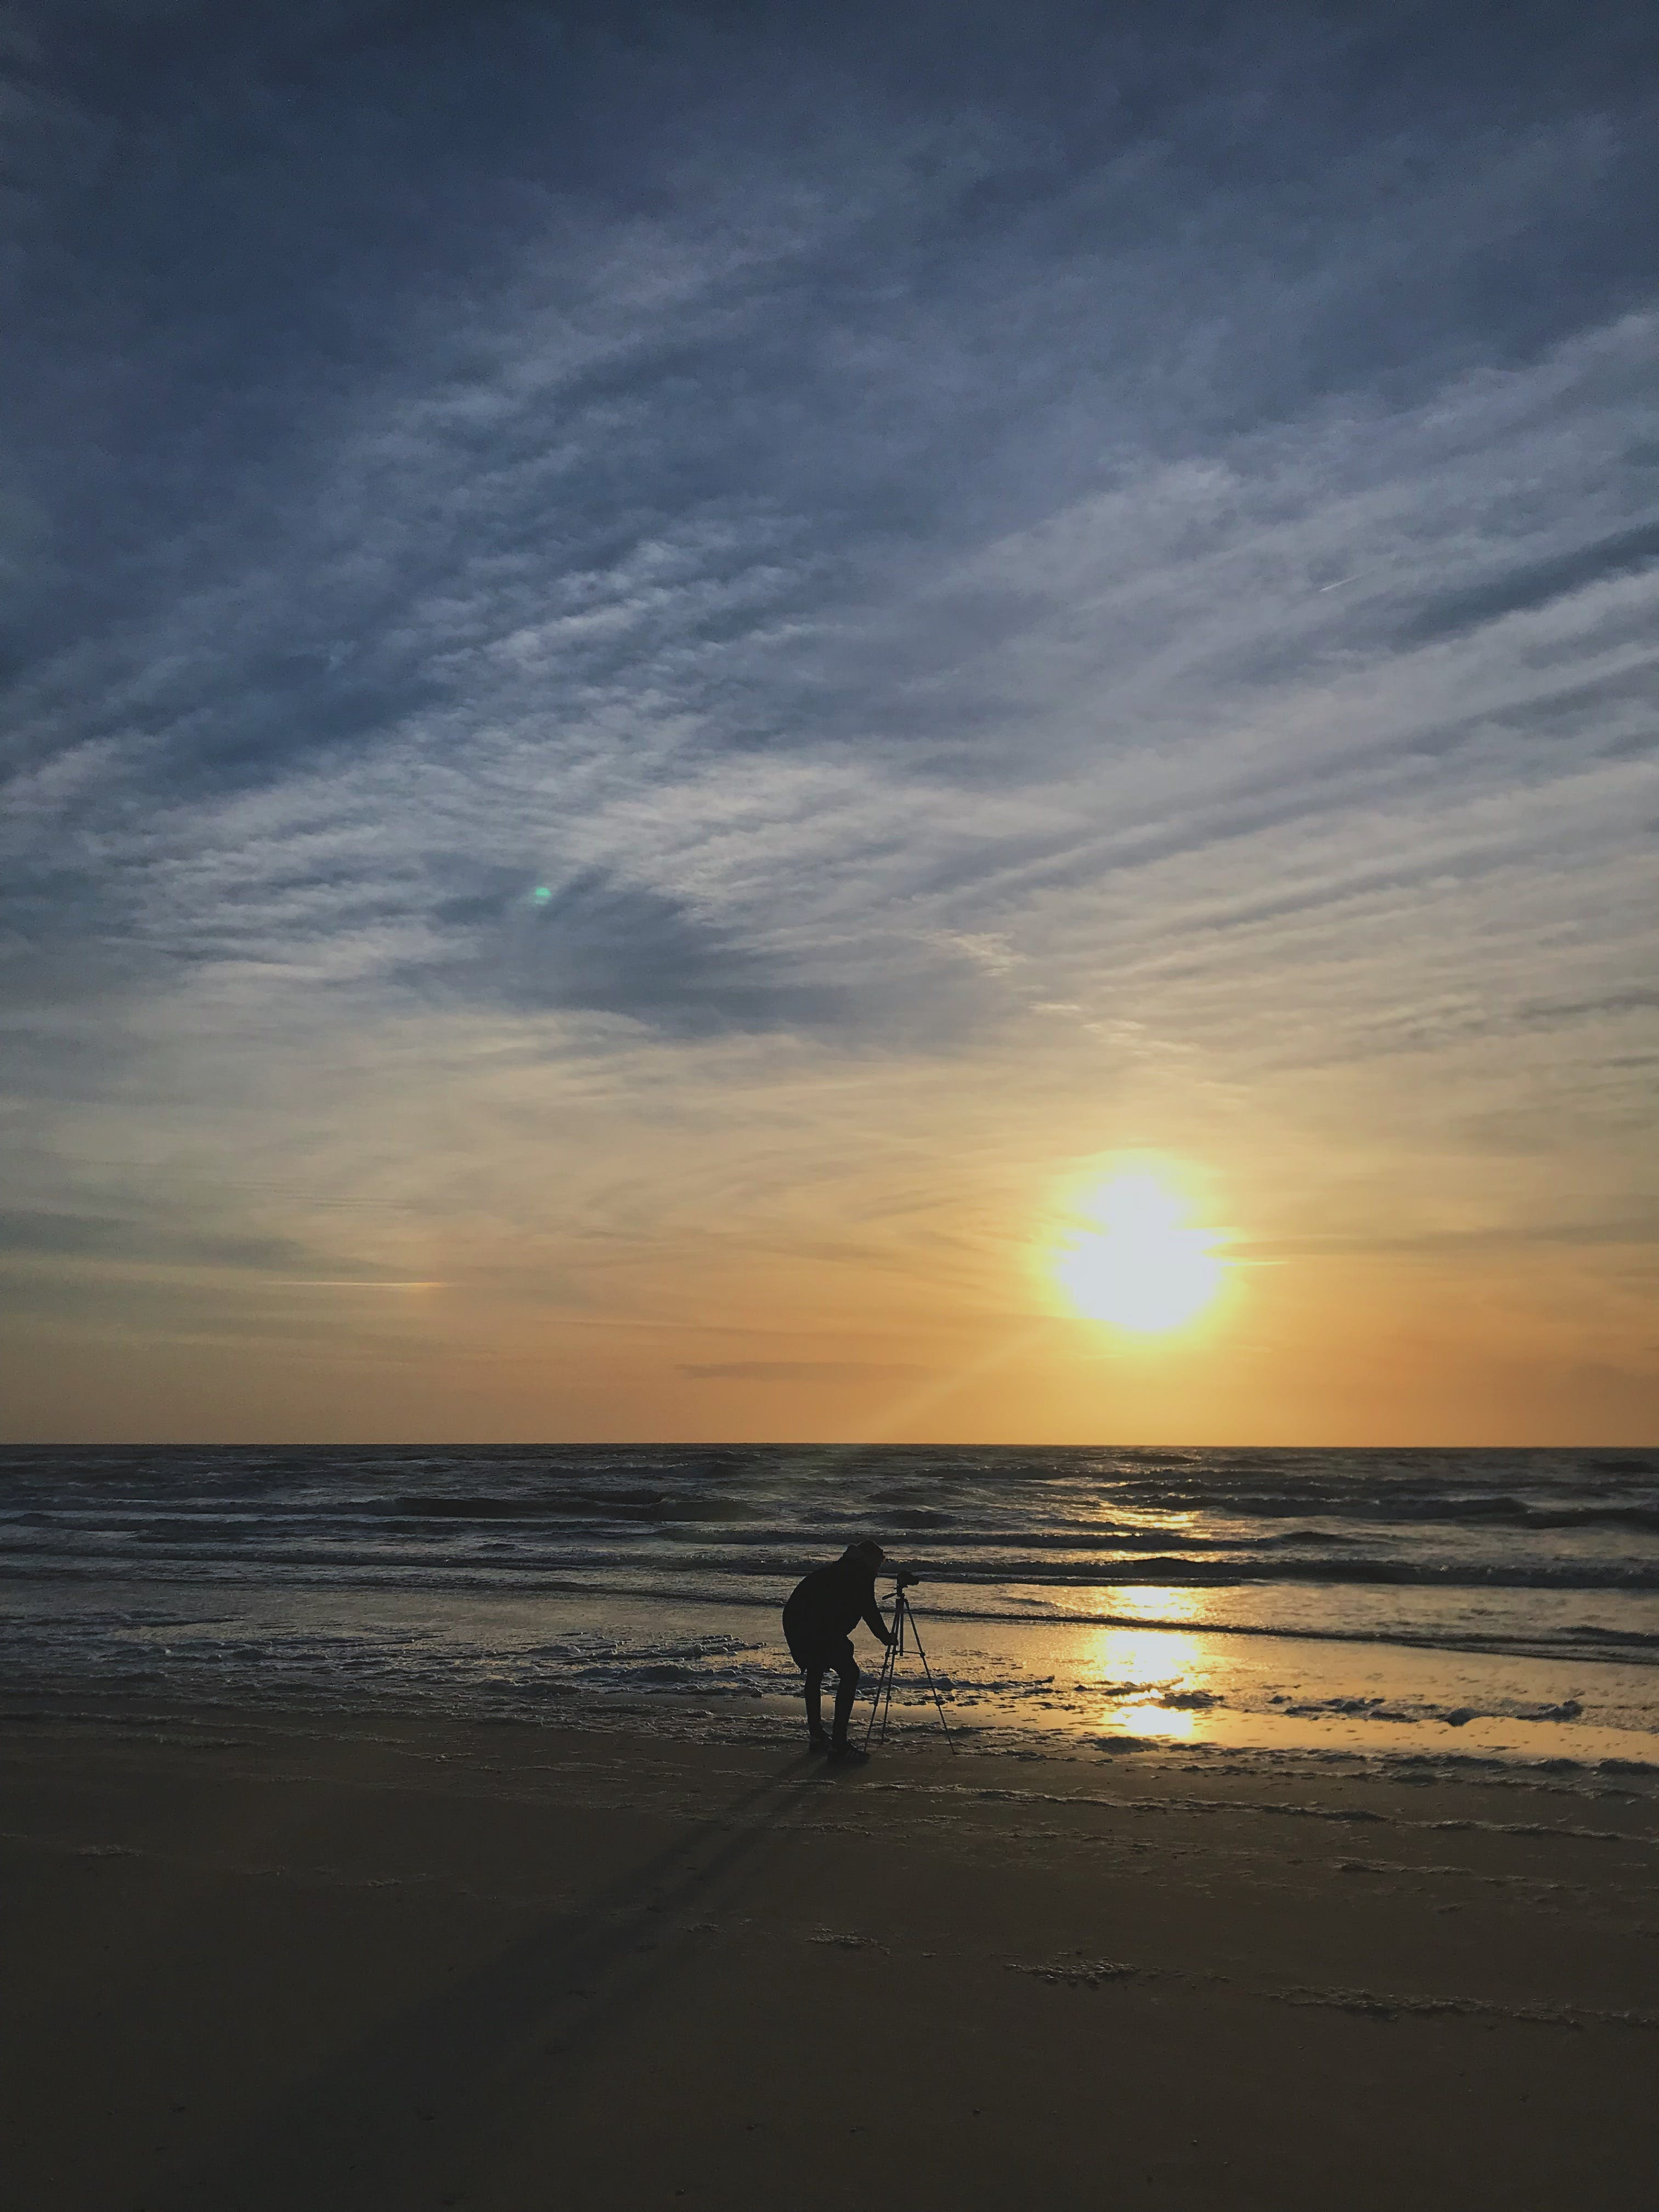 Silhouette Photo of Person Placing Tripod Stand on Seashore